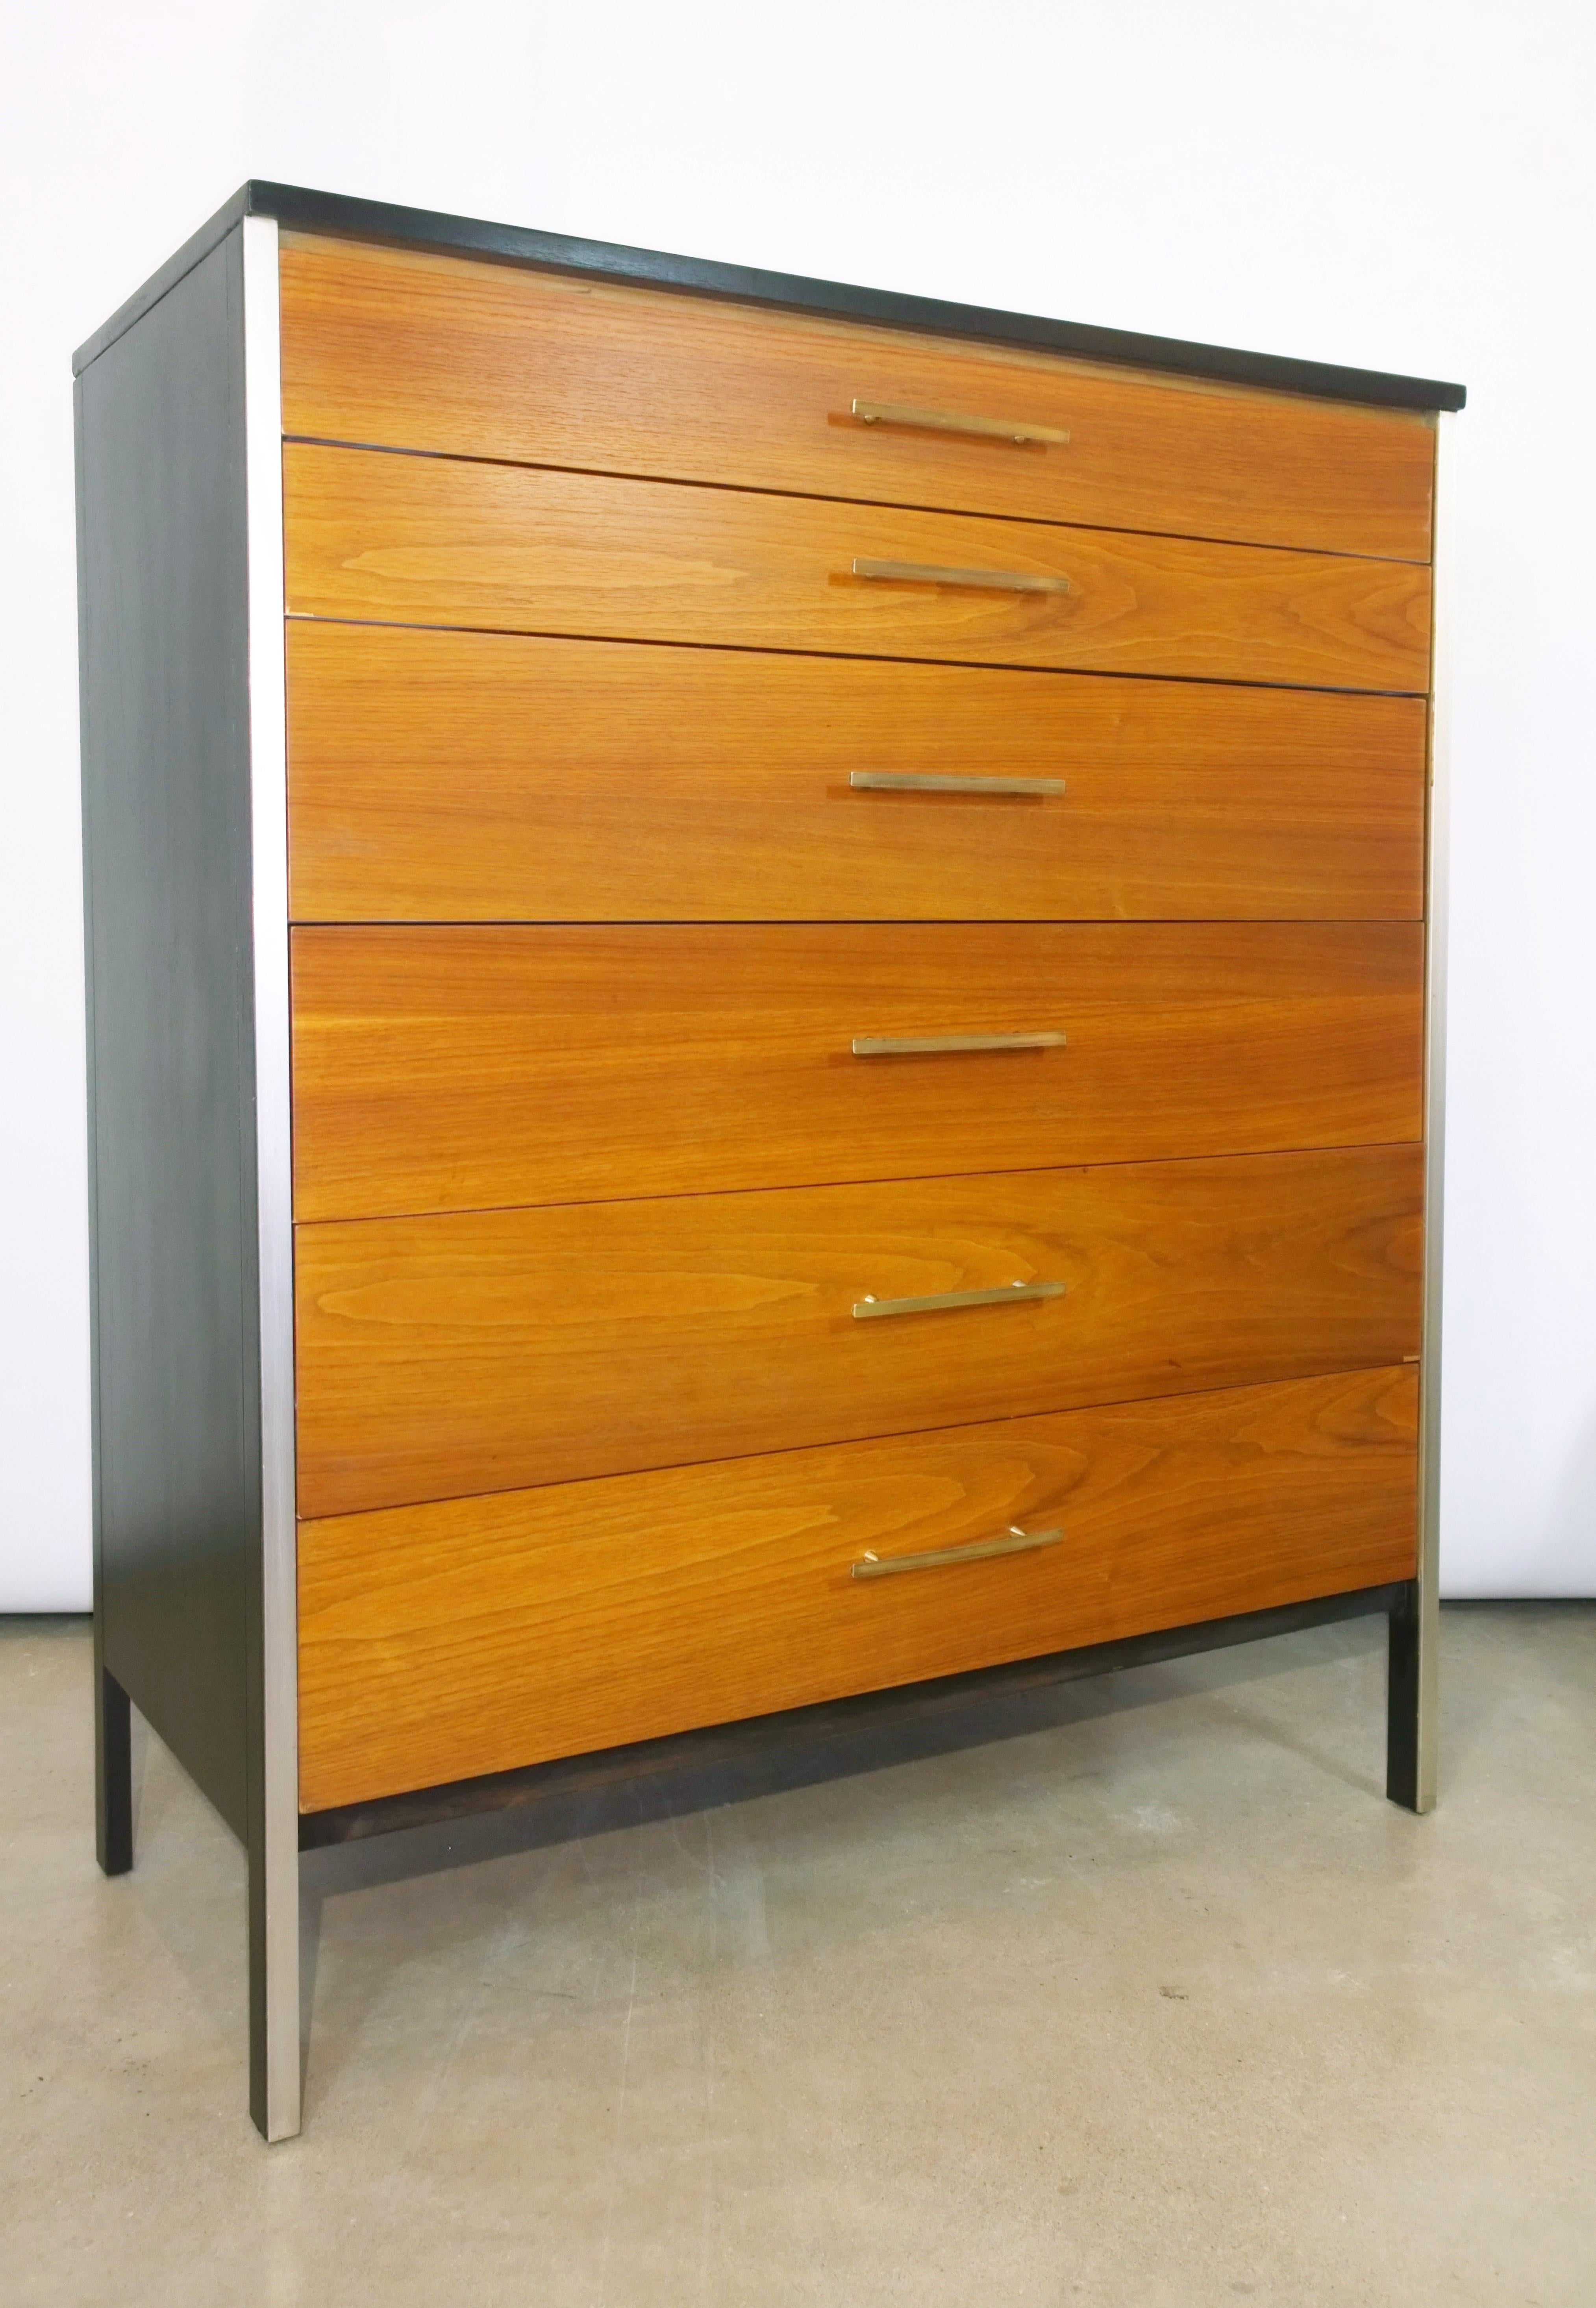 Picture of: Black Frame And Natural Walnut 6 Drawer W Brass Pulls Chest Of Drawers High Boy For Sale At 1stdibs